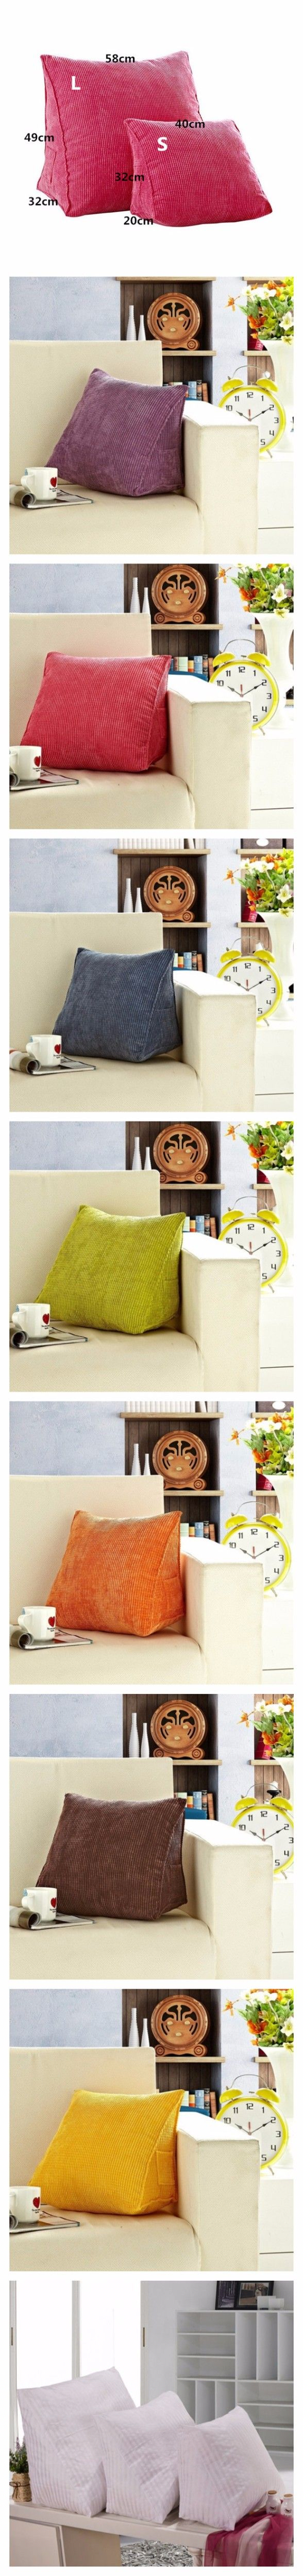 Aeproducttsubject costurices pinterest pillows patchwork